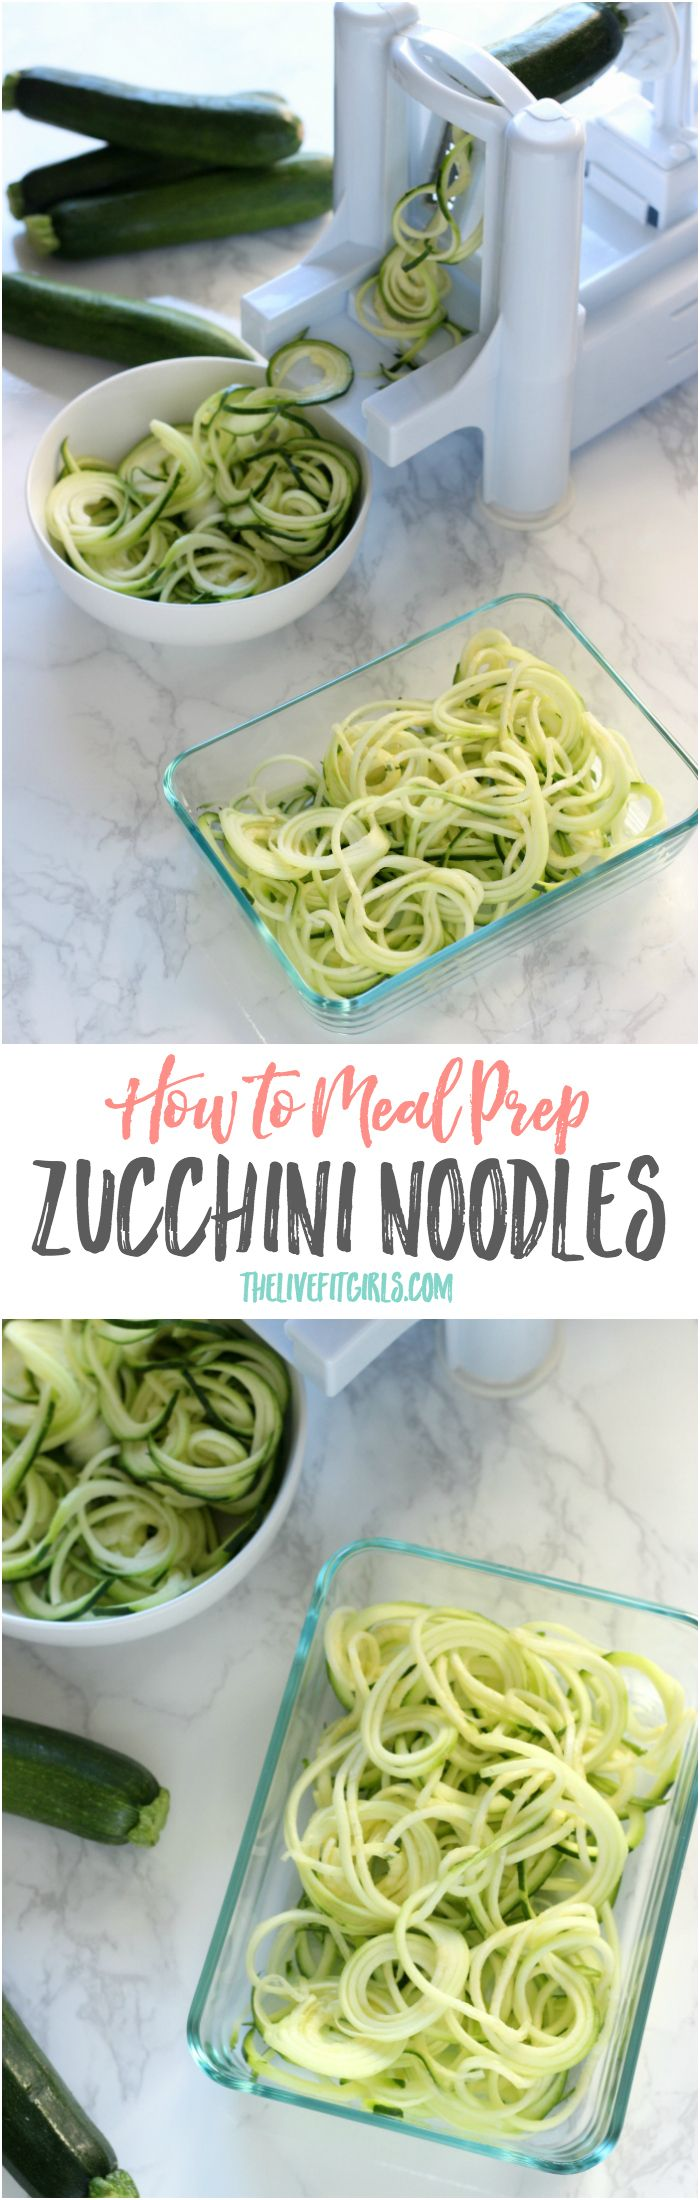 Meal Prep How To: Zucchini Noodles Oven Baked Chicken